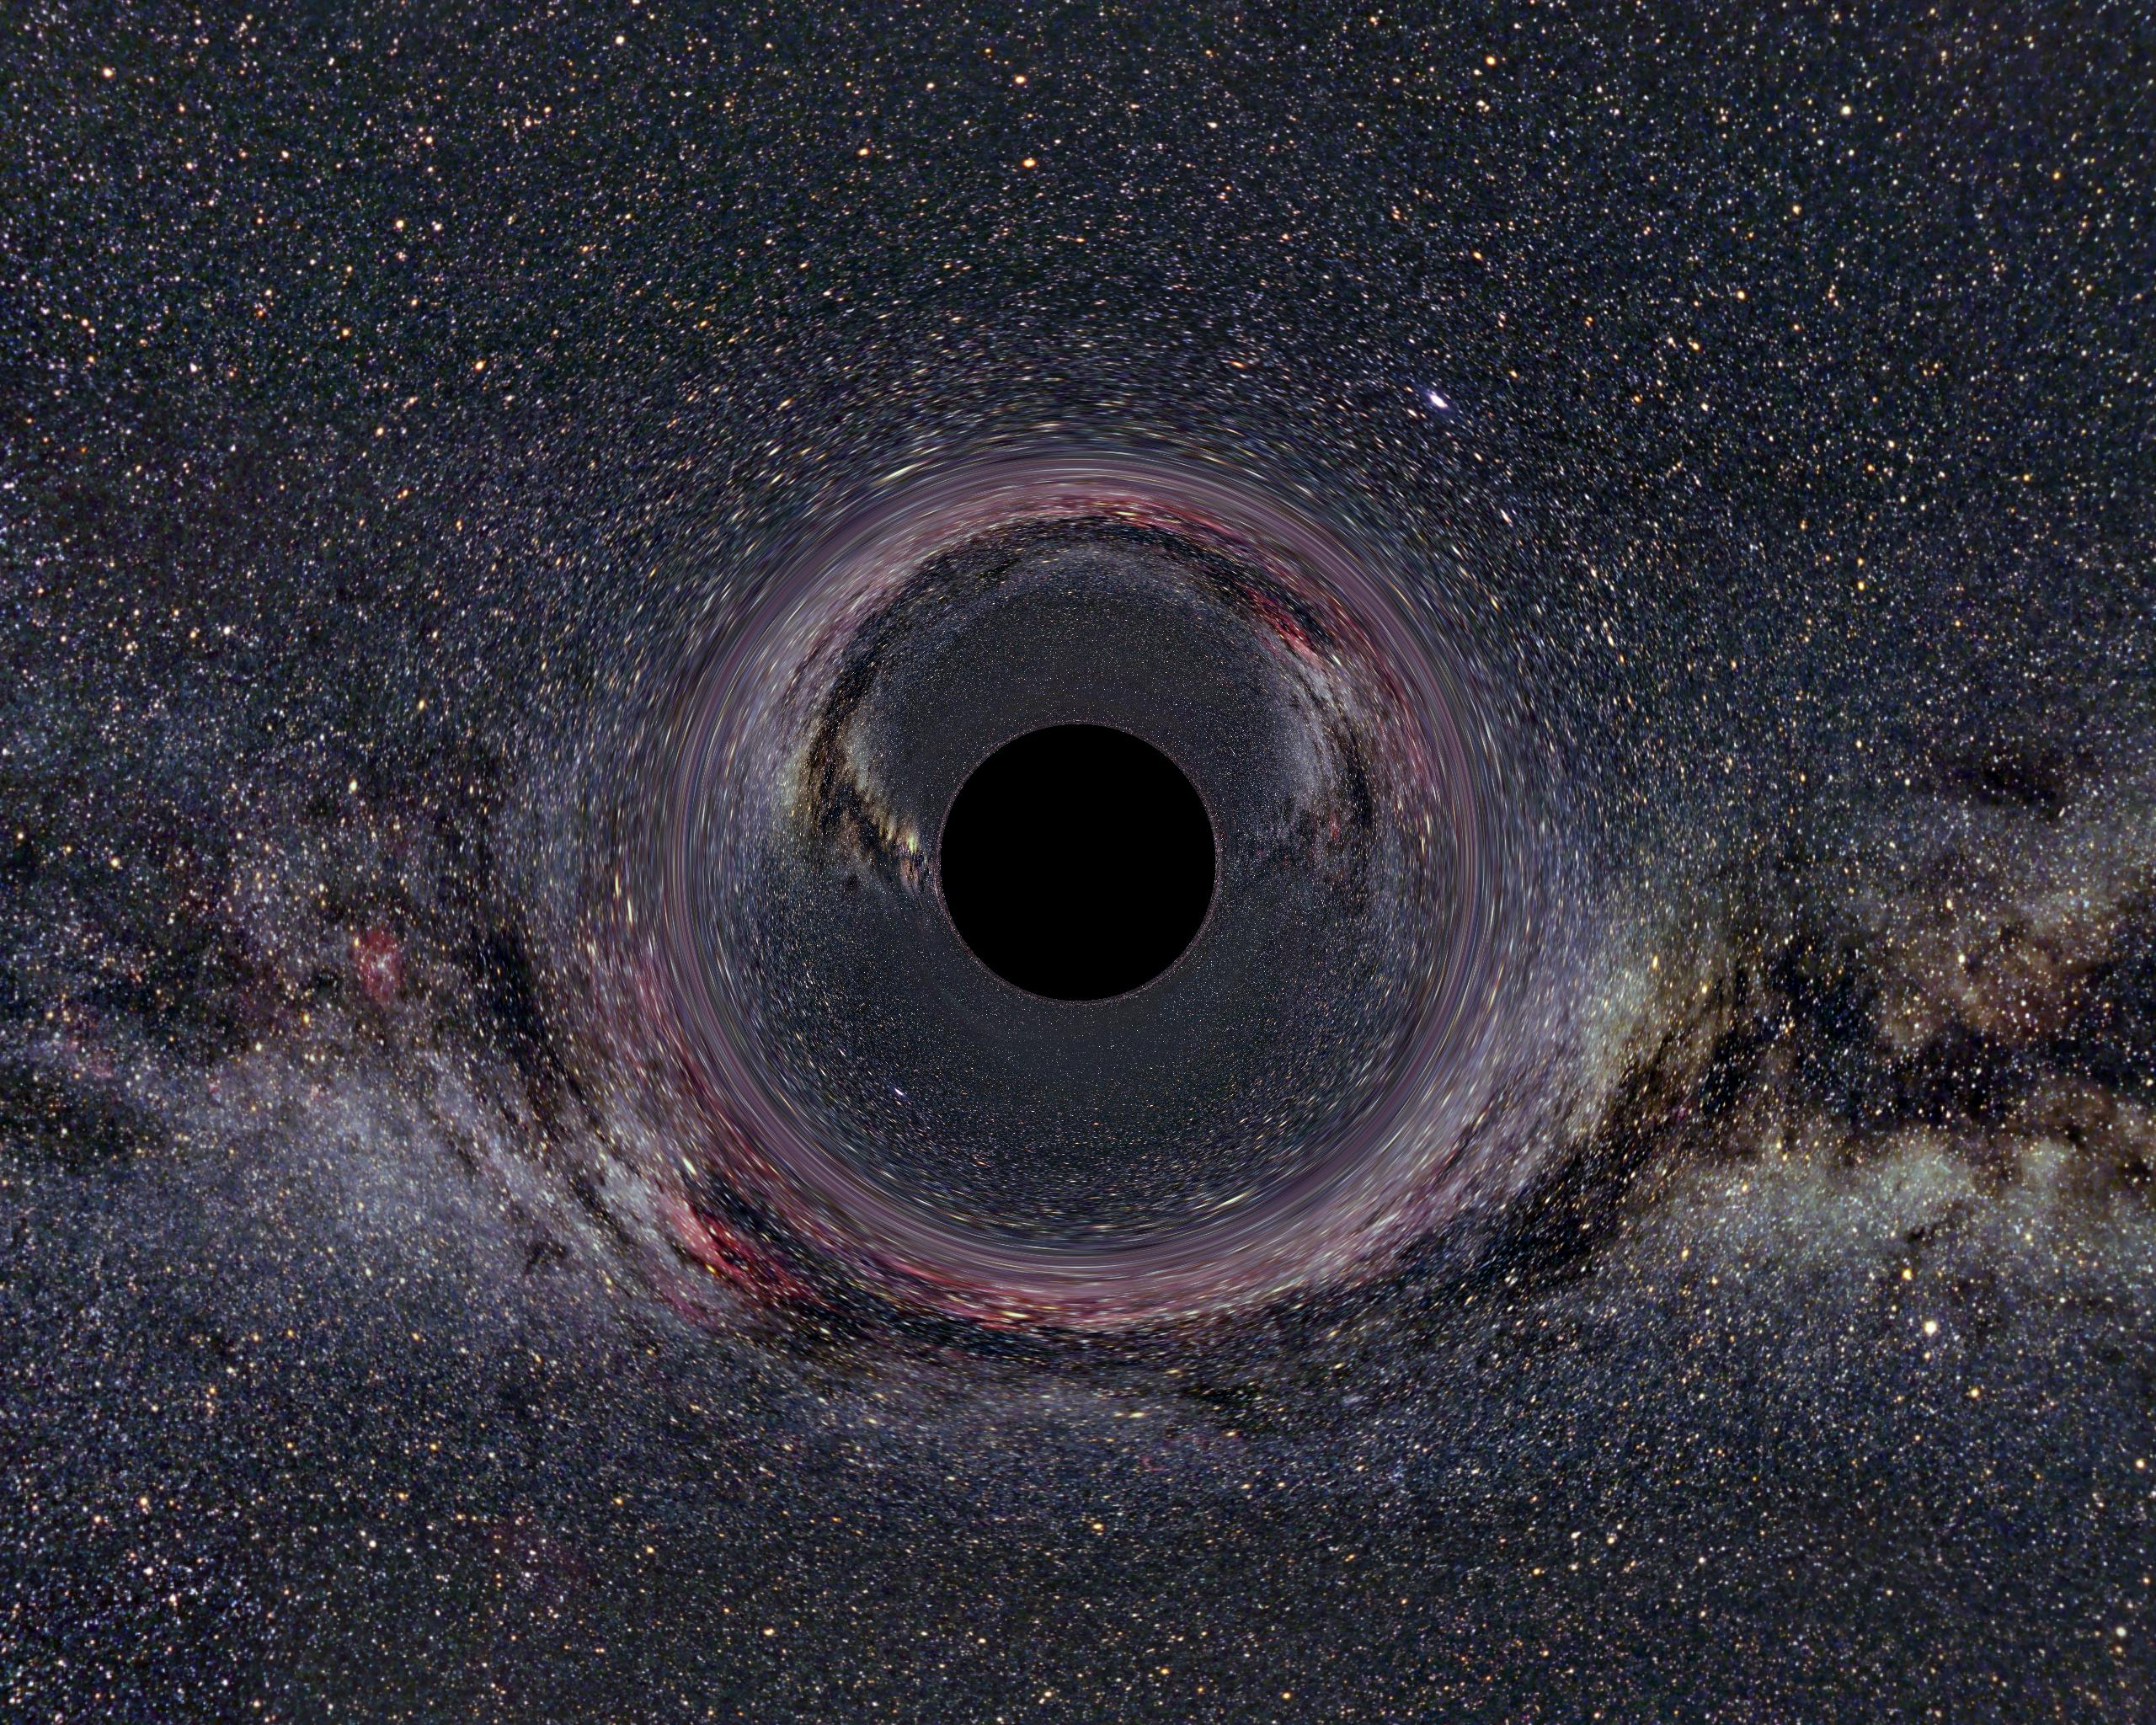 Black hole visualization